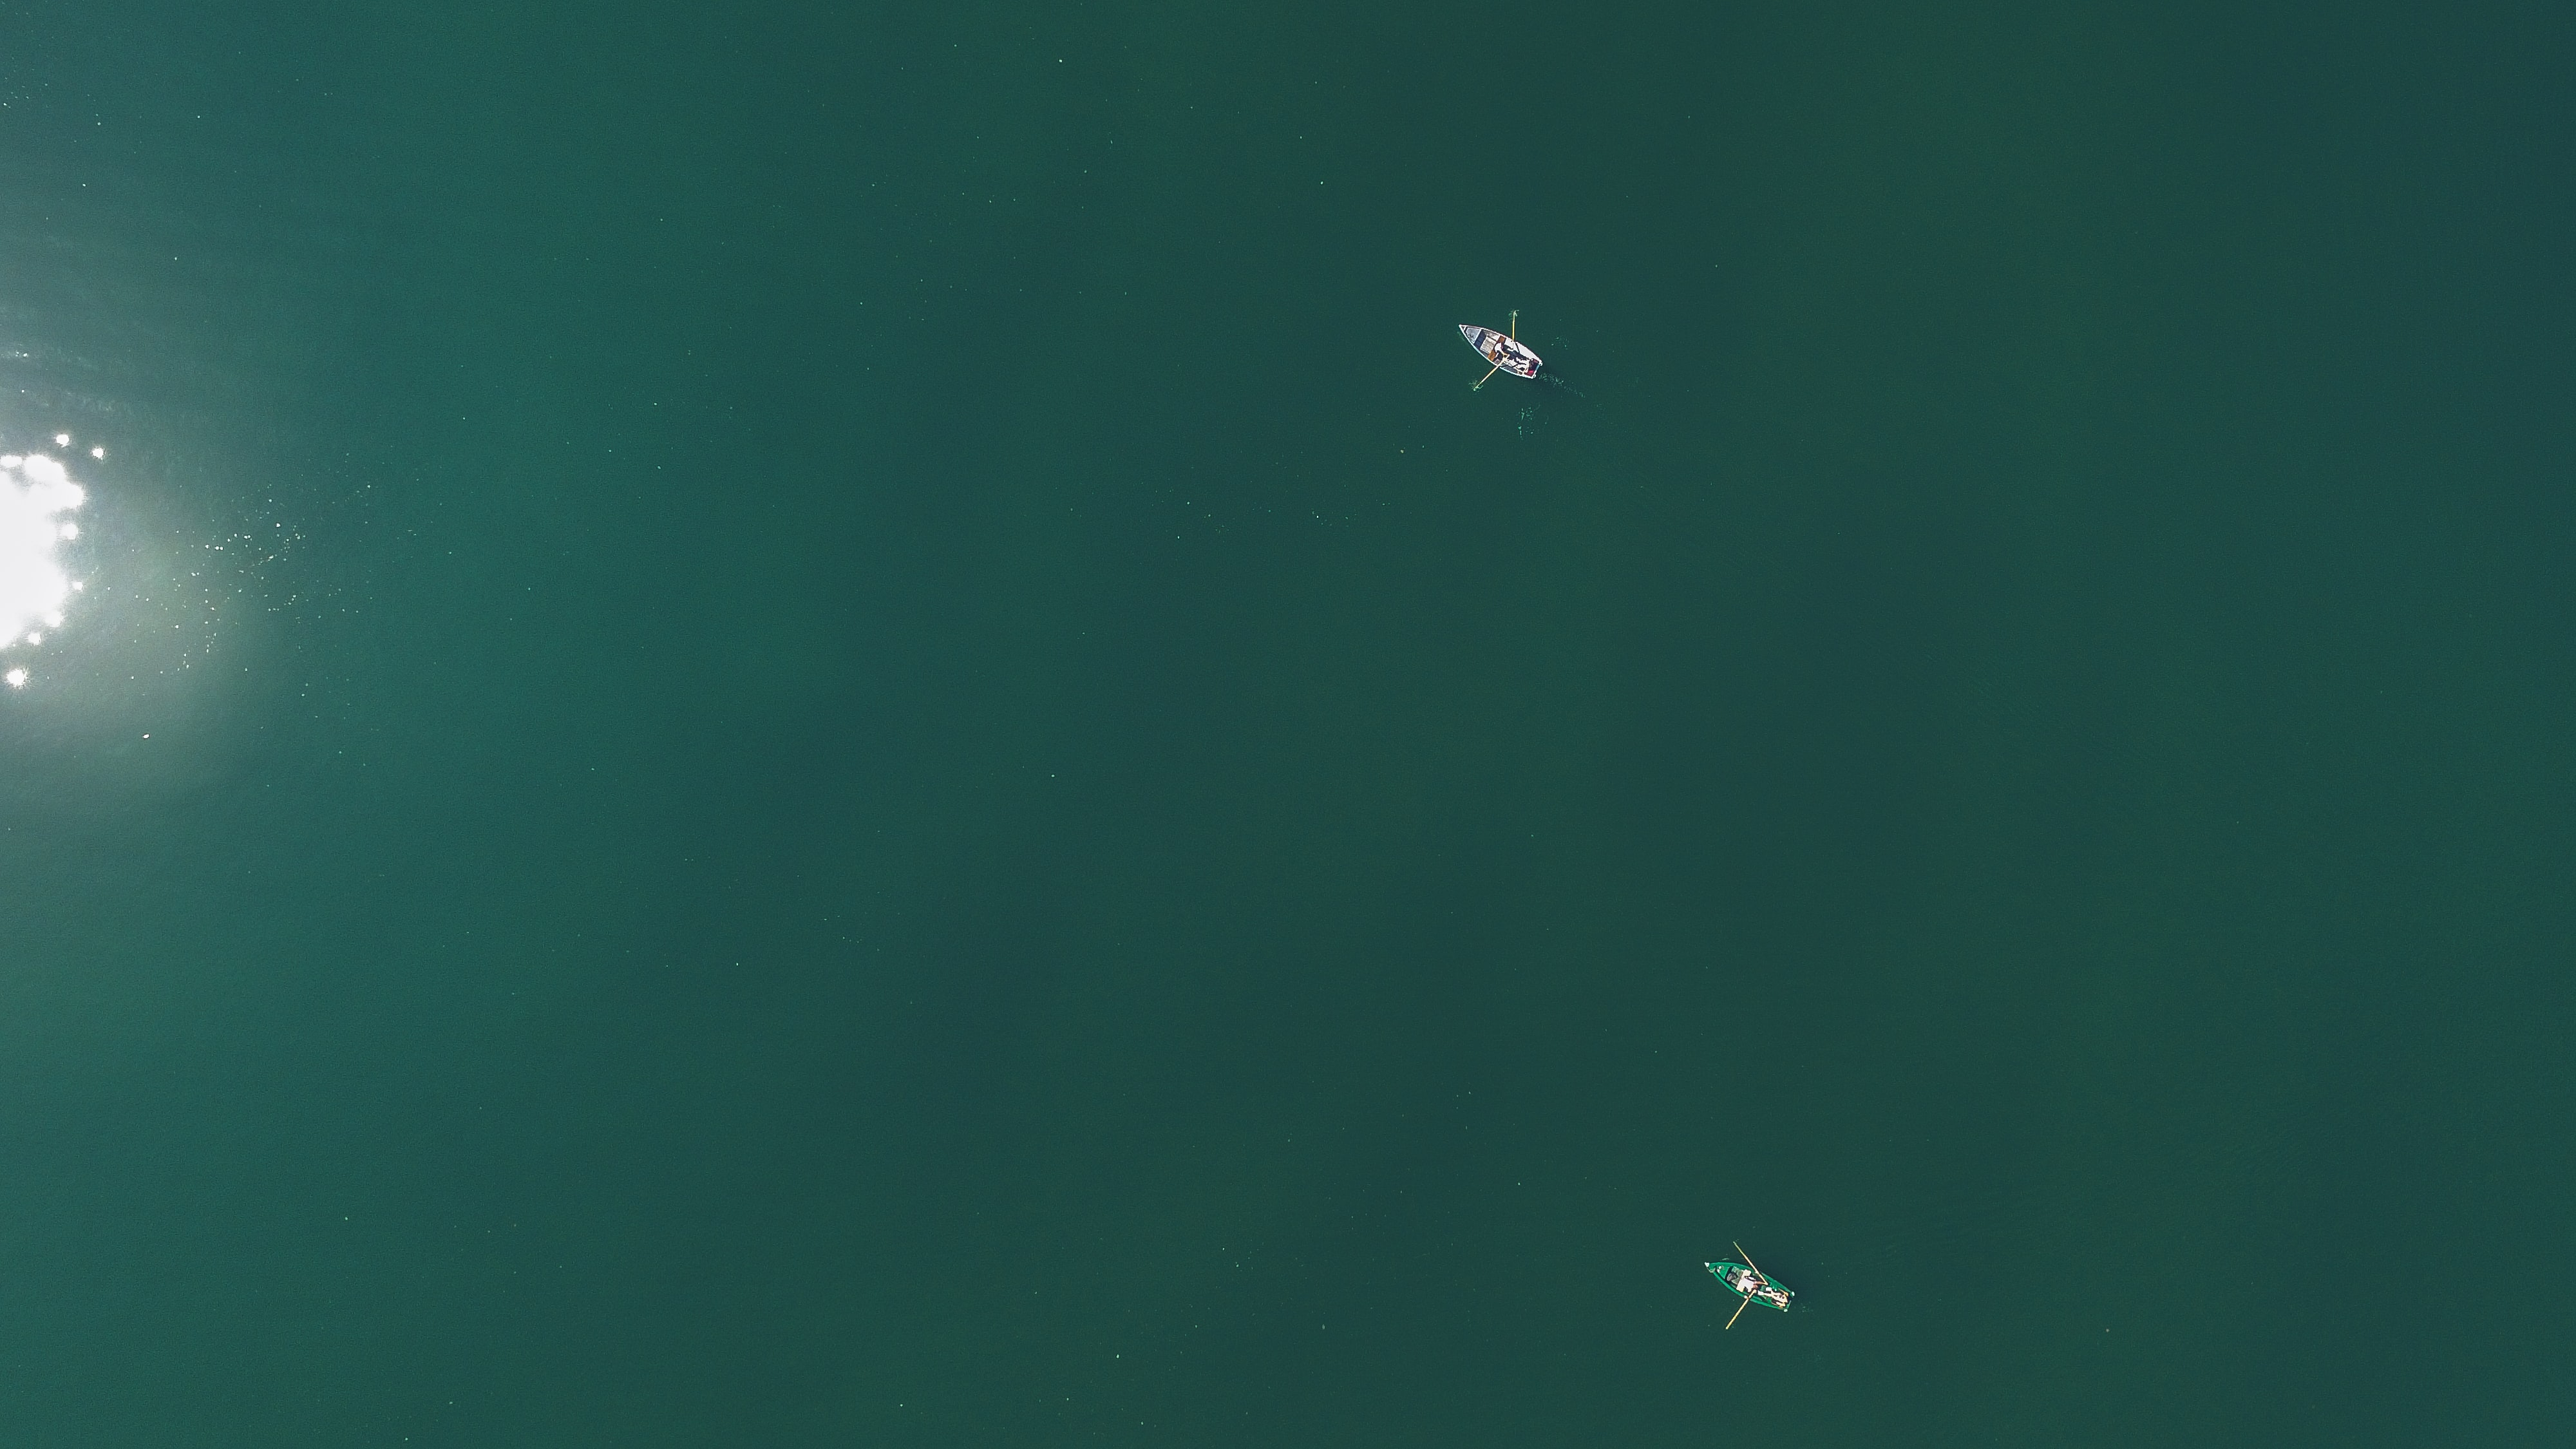 aerial photography of two boats on body of water